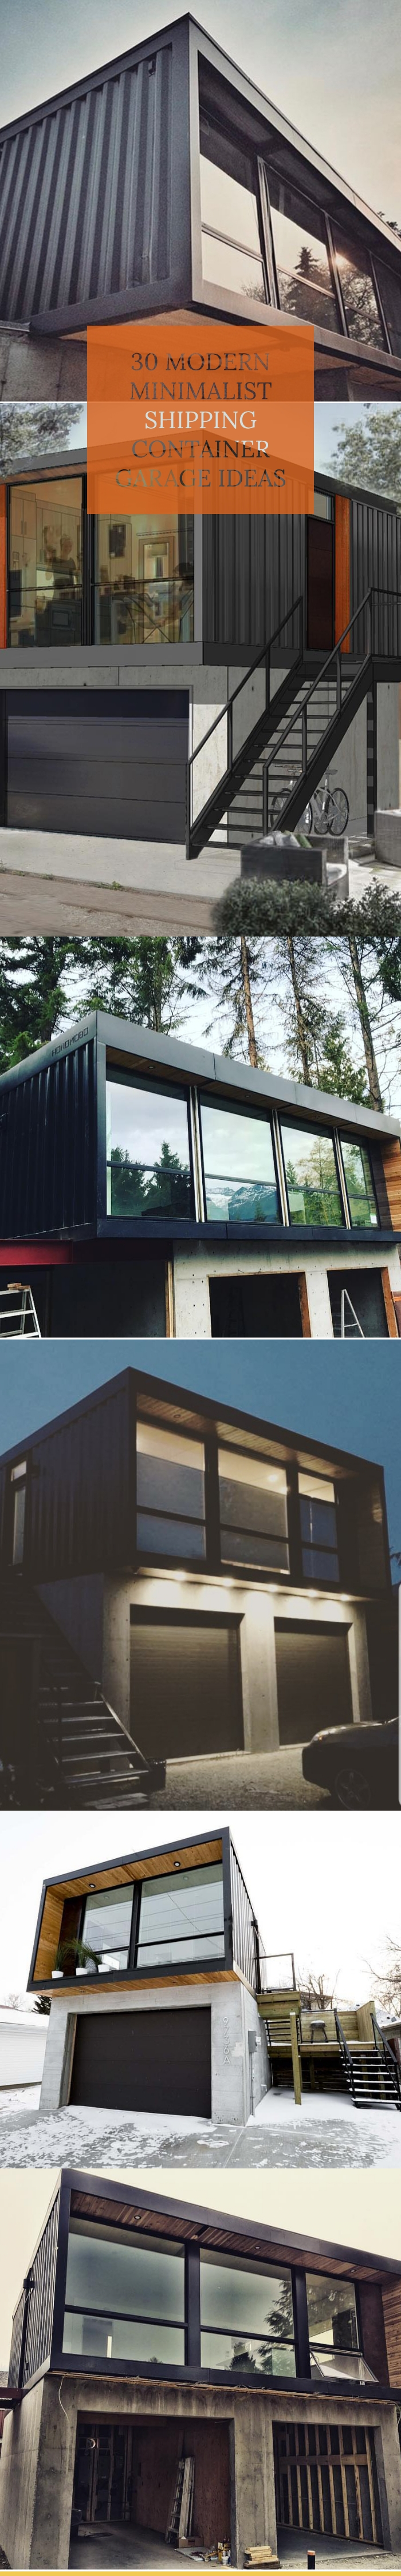 15 Unexpectedly Cool Shipping Container Garage Conversion